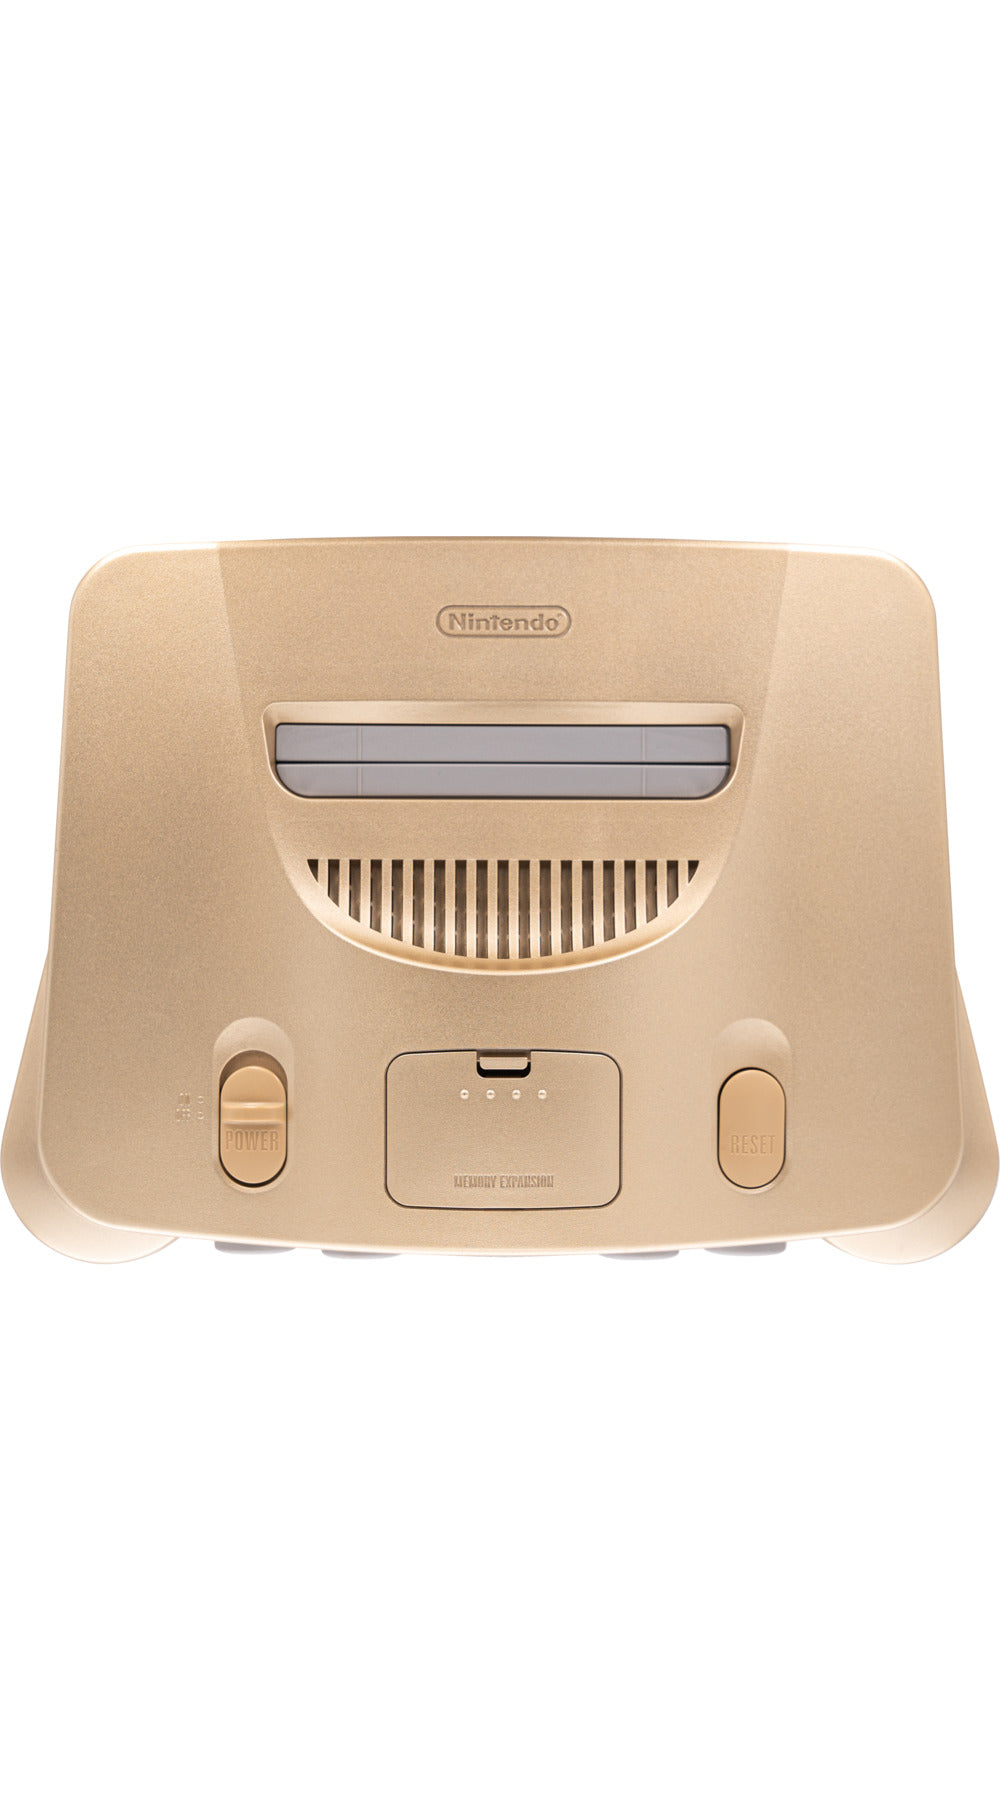 Nintendo 64 Gold Console - Video Game Delivery